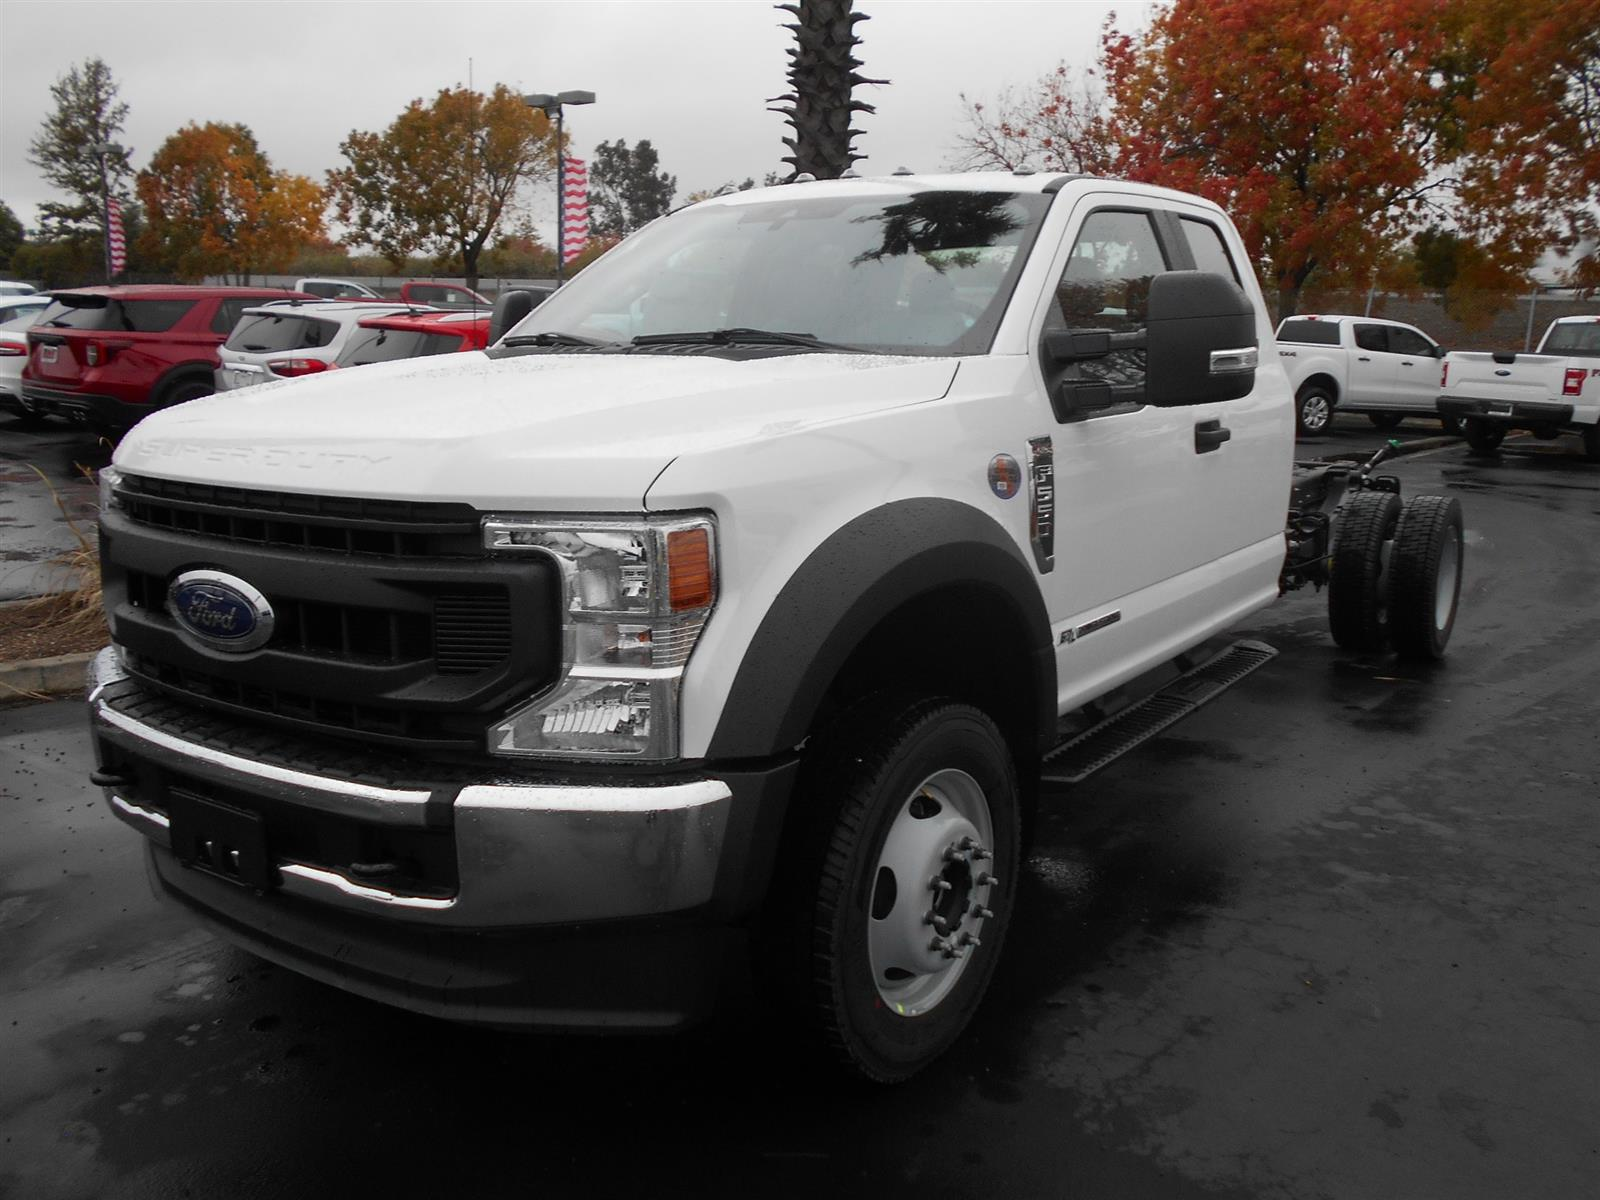 2020 Ford F-550 Super Cab DRW 4x4, Cab Chassis #58826 - photo 1